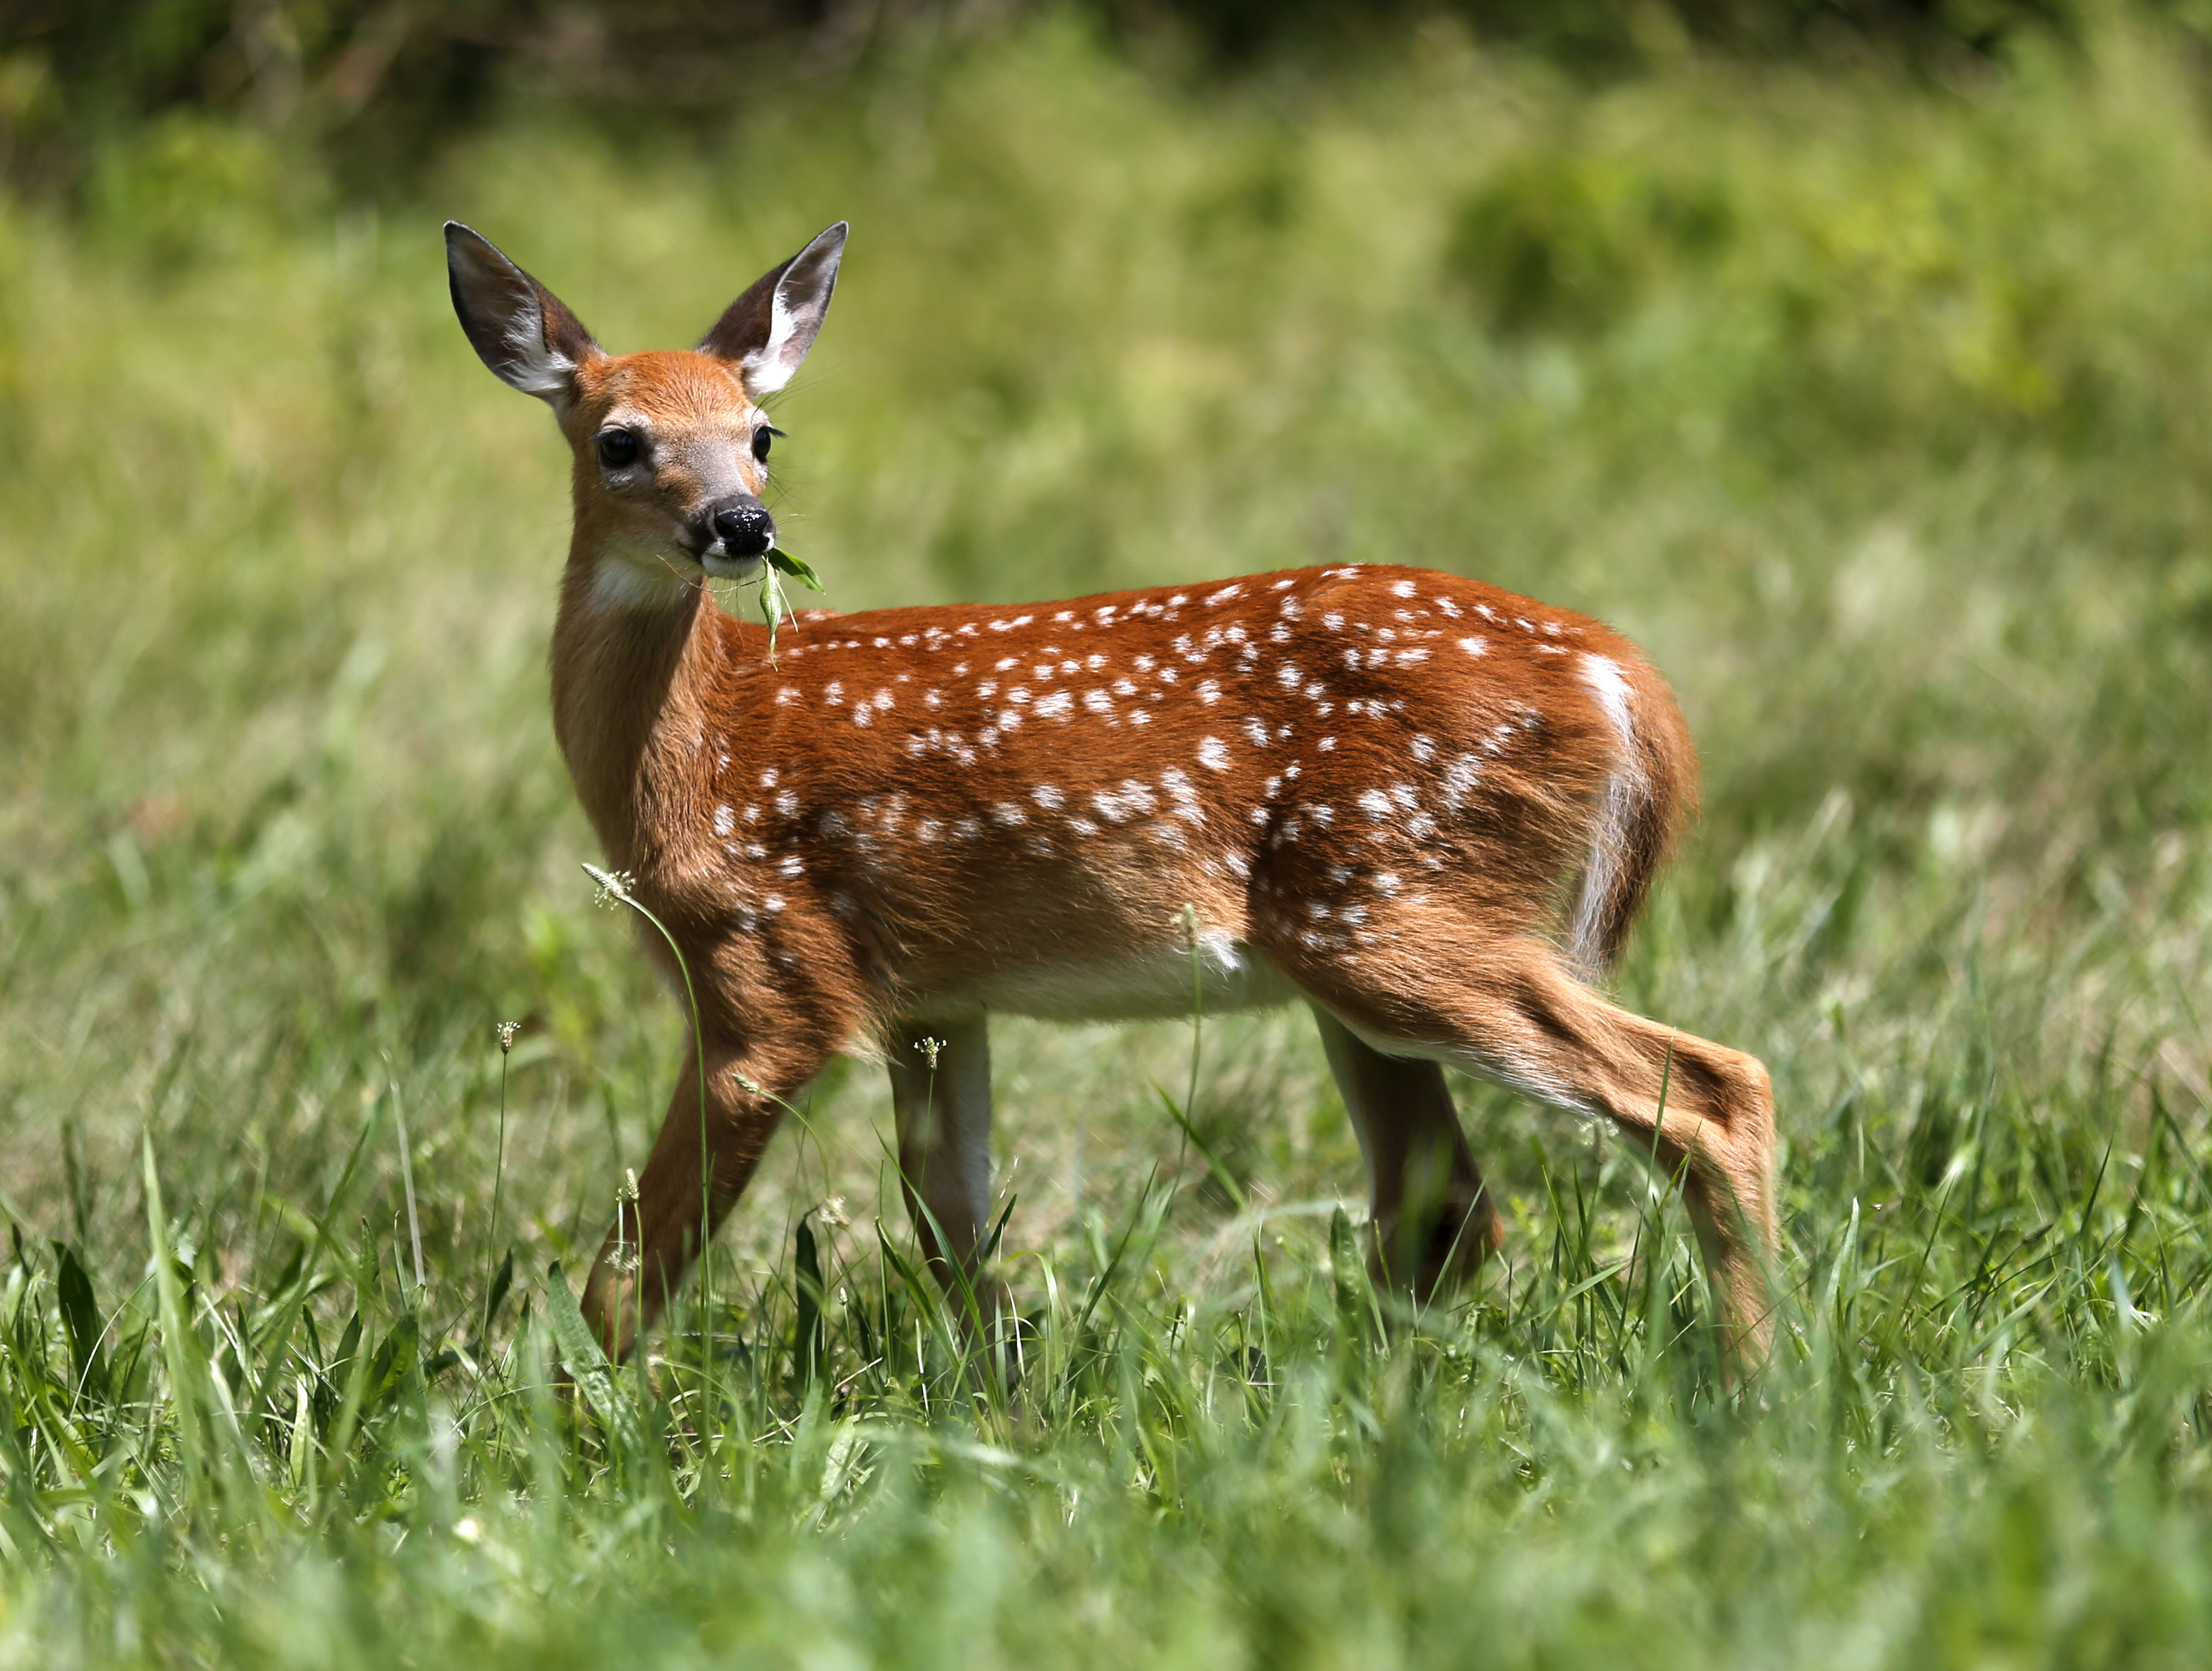 Garden Plot: Chiggers, poison ivy and those darn deer